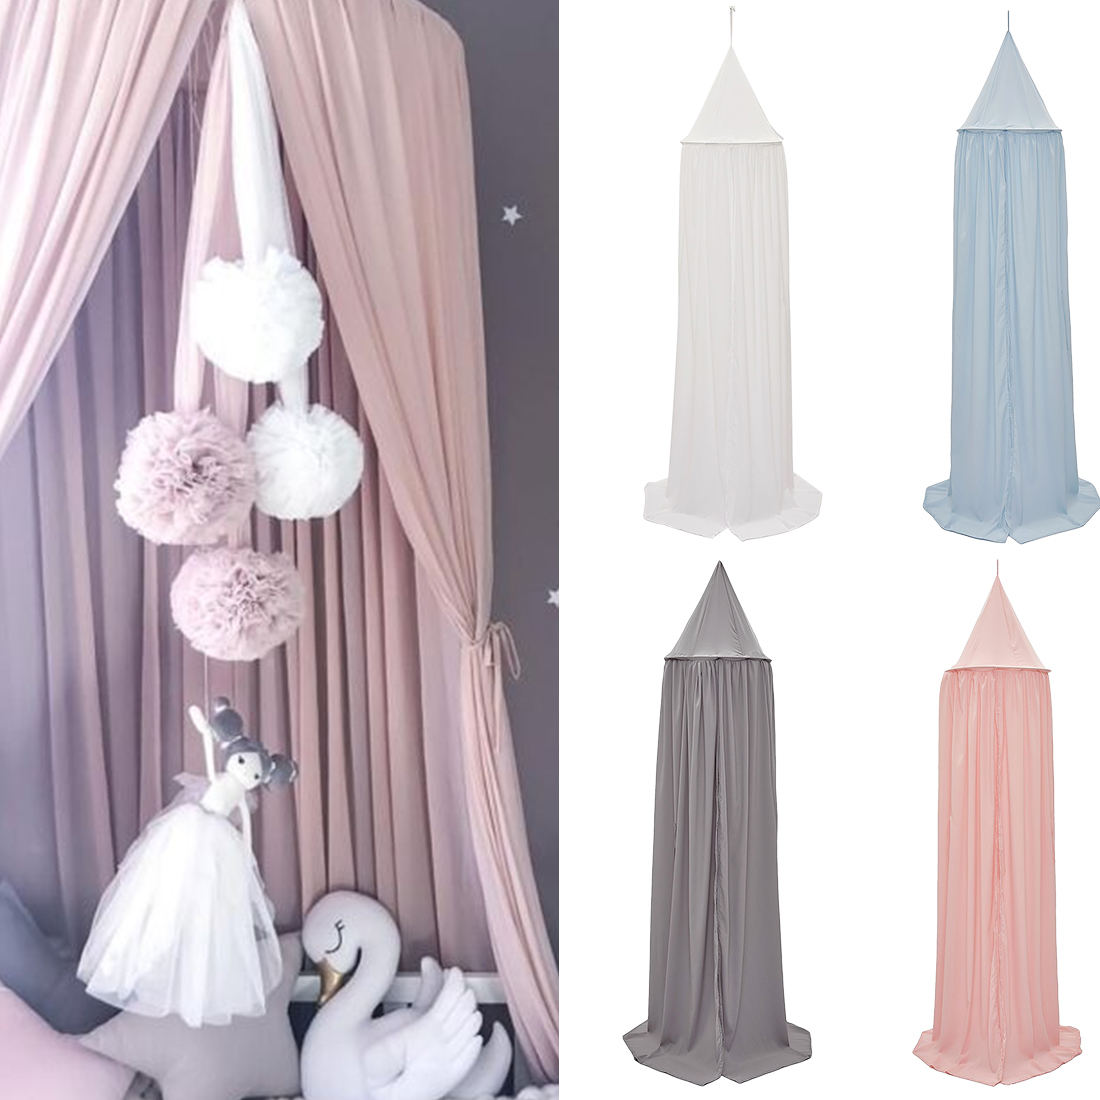 Pure White Feather Woven Dream Catcher Circular Net With: Pure Color Hanging Cotton Kids Baby Bedding Dome Bed